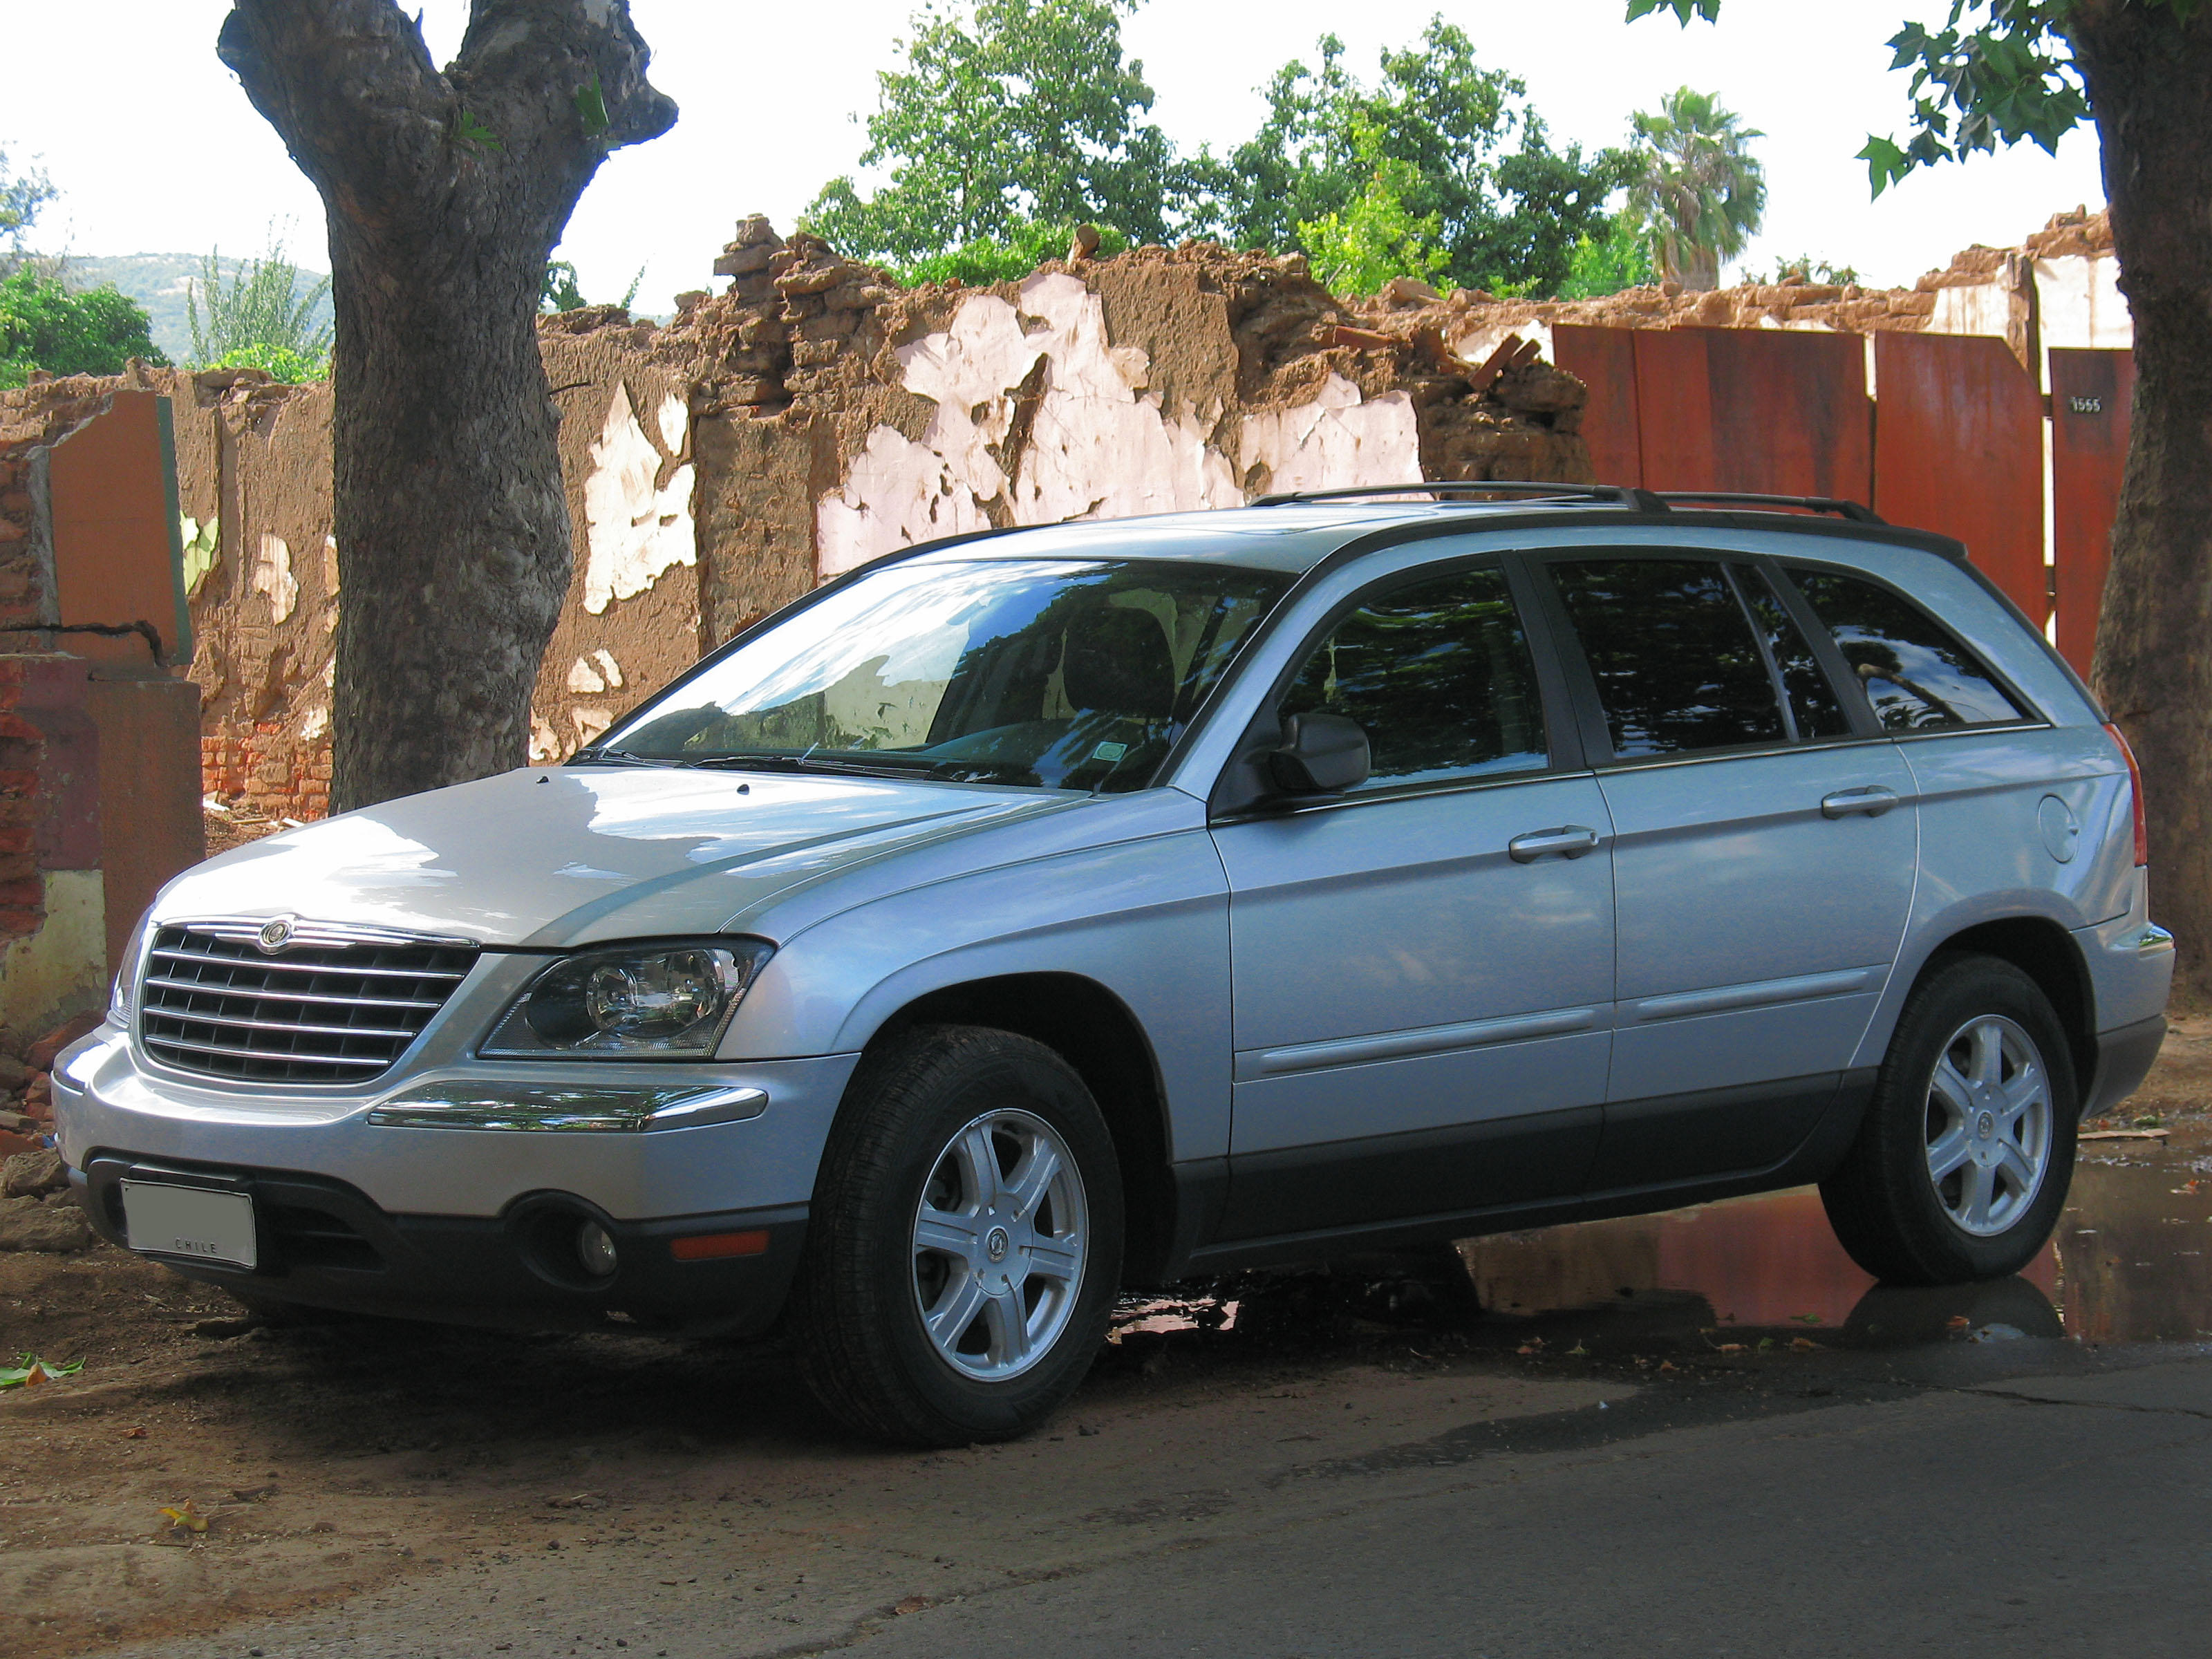 file chrysler pacifica touring awd 2006 9626443288 jpg wikimedia commons. Black Bedroom Furniture Sets. Home Design Ideas